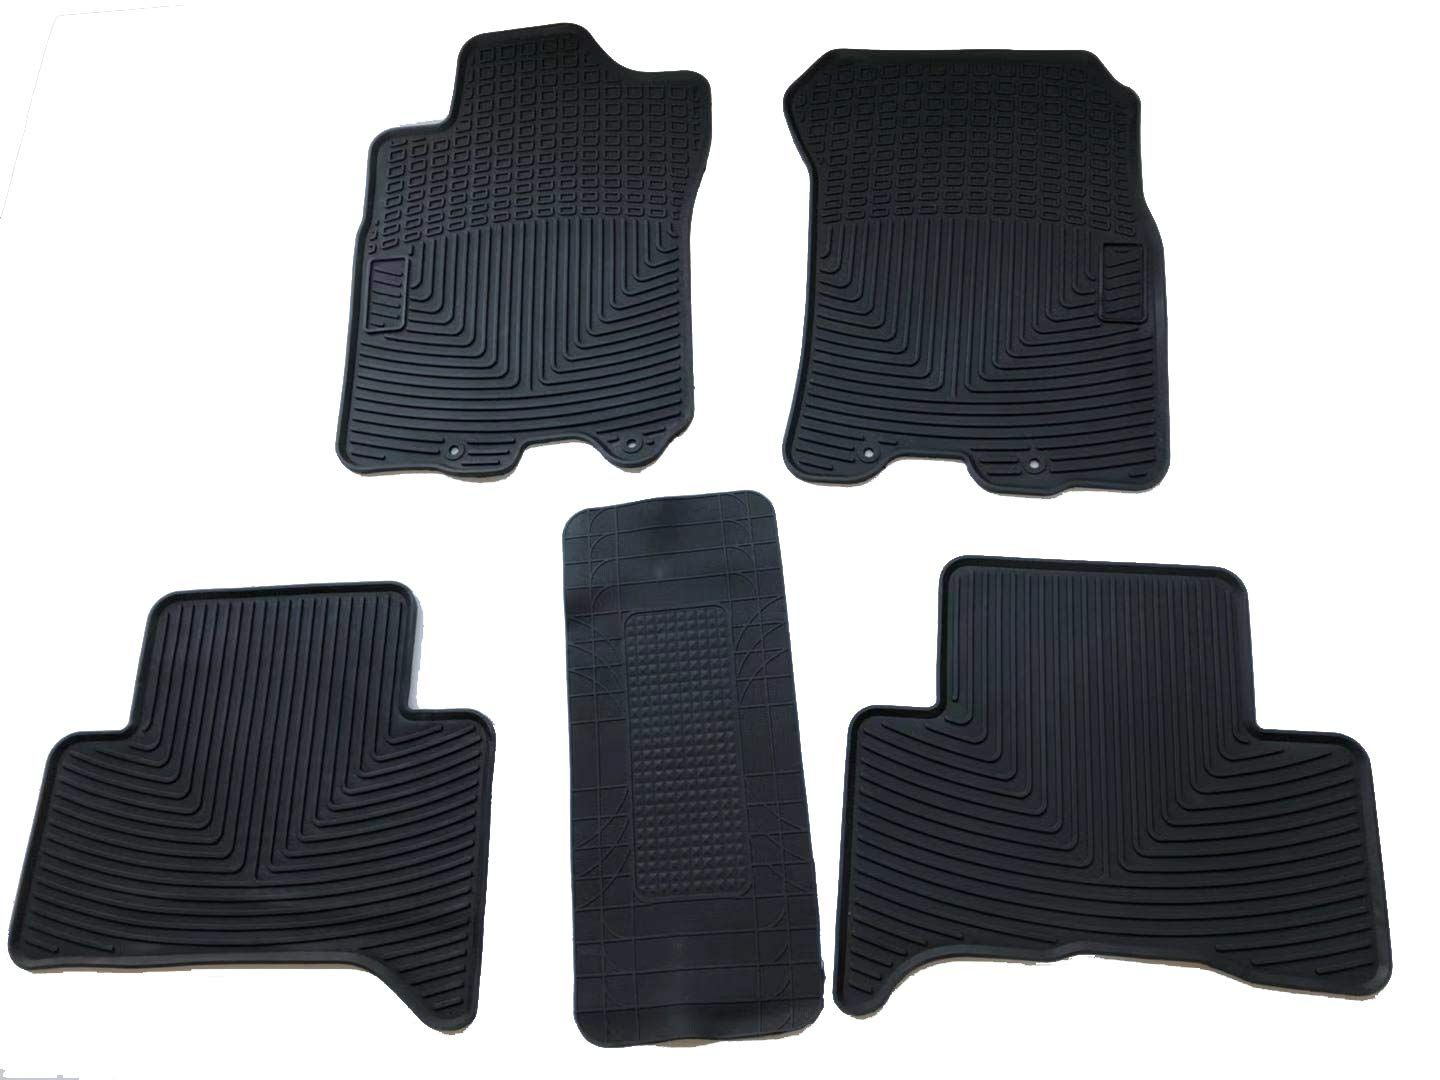 Caartonn Rubber Floor Mats All Weather Heavy Duty Trunk Mats Fit For Toyota Fj Cruiser 2010 2011 2012 2013 20 In 2020 Cargo Cover Kia Sportage Honda Crv 2017